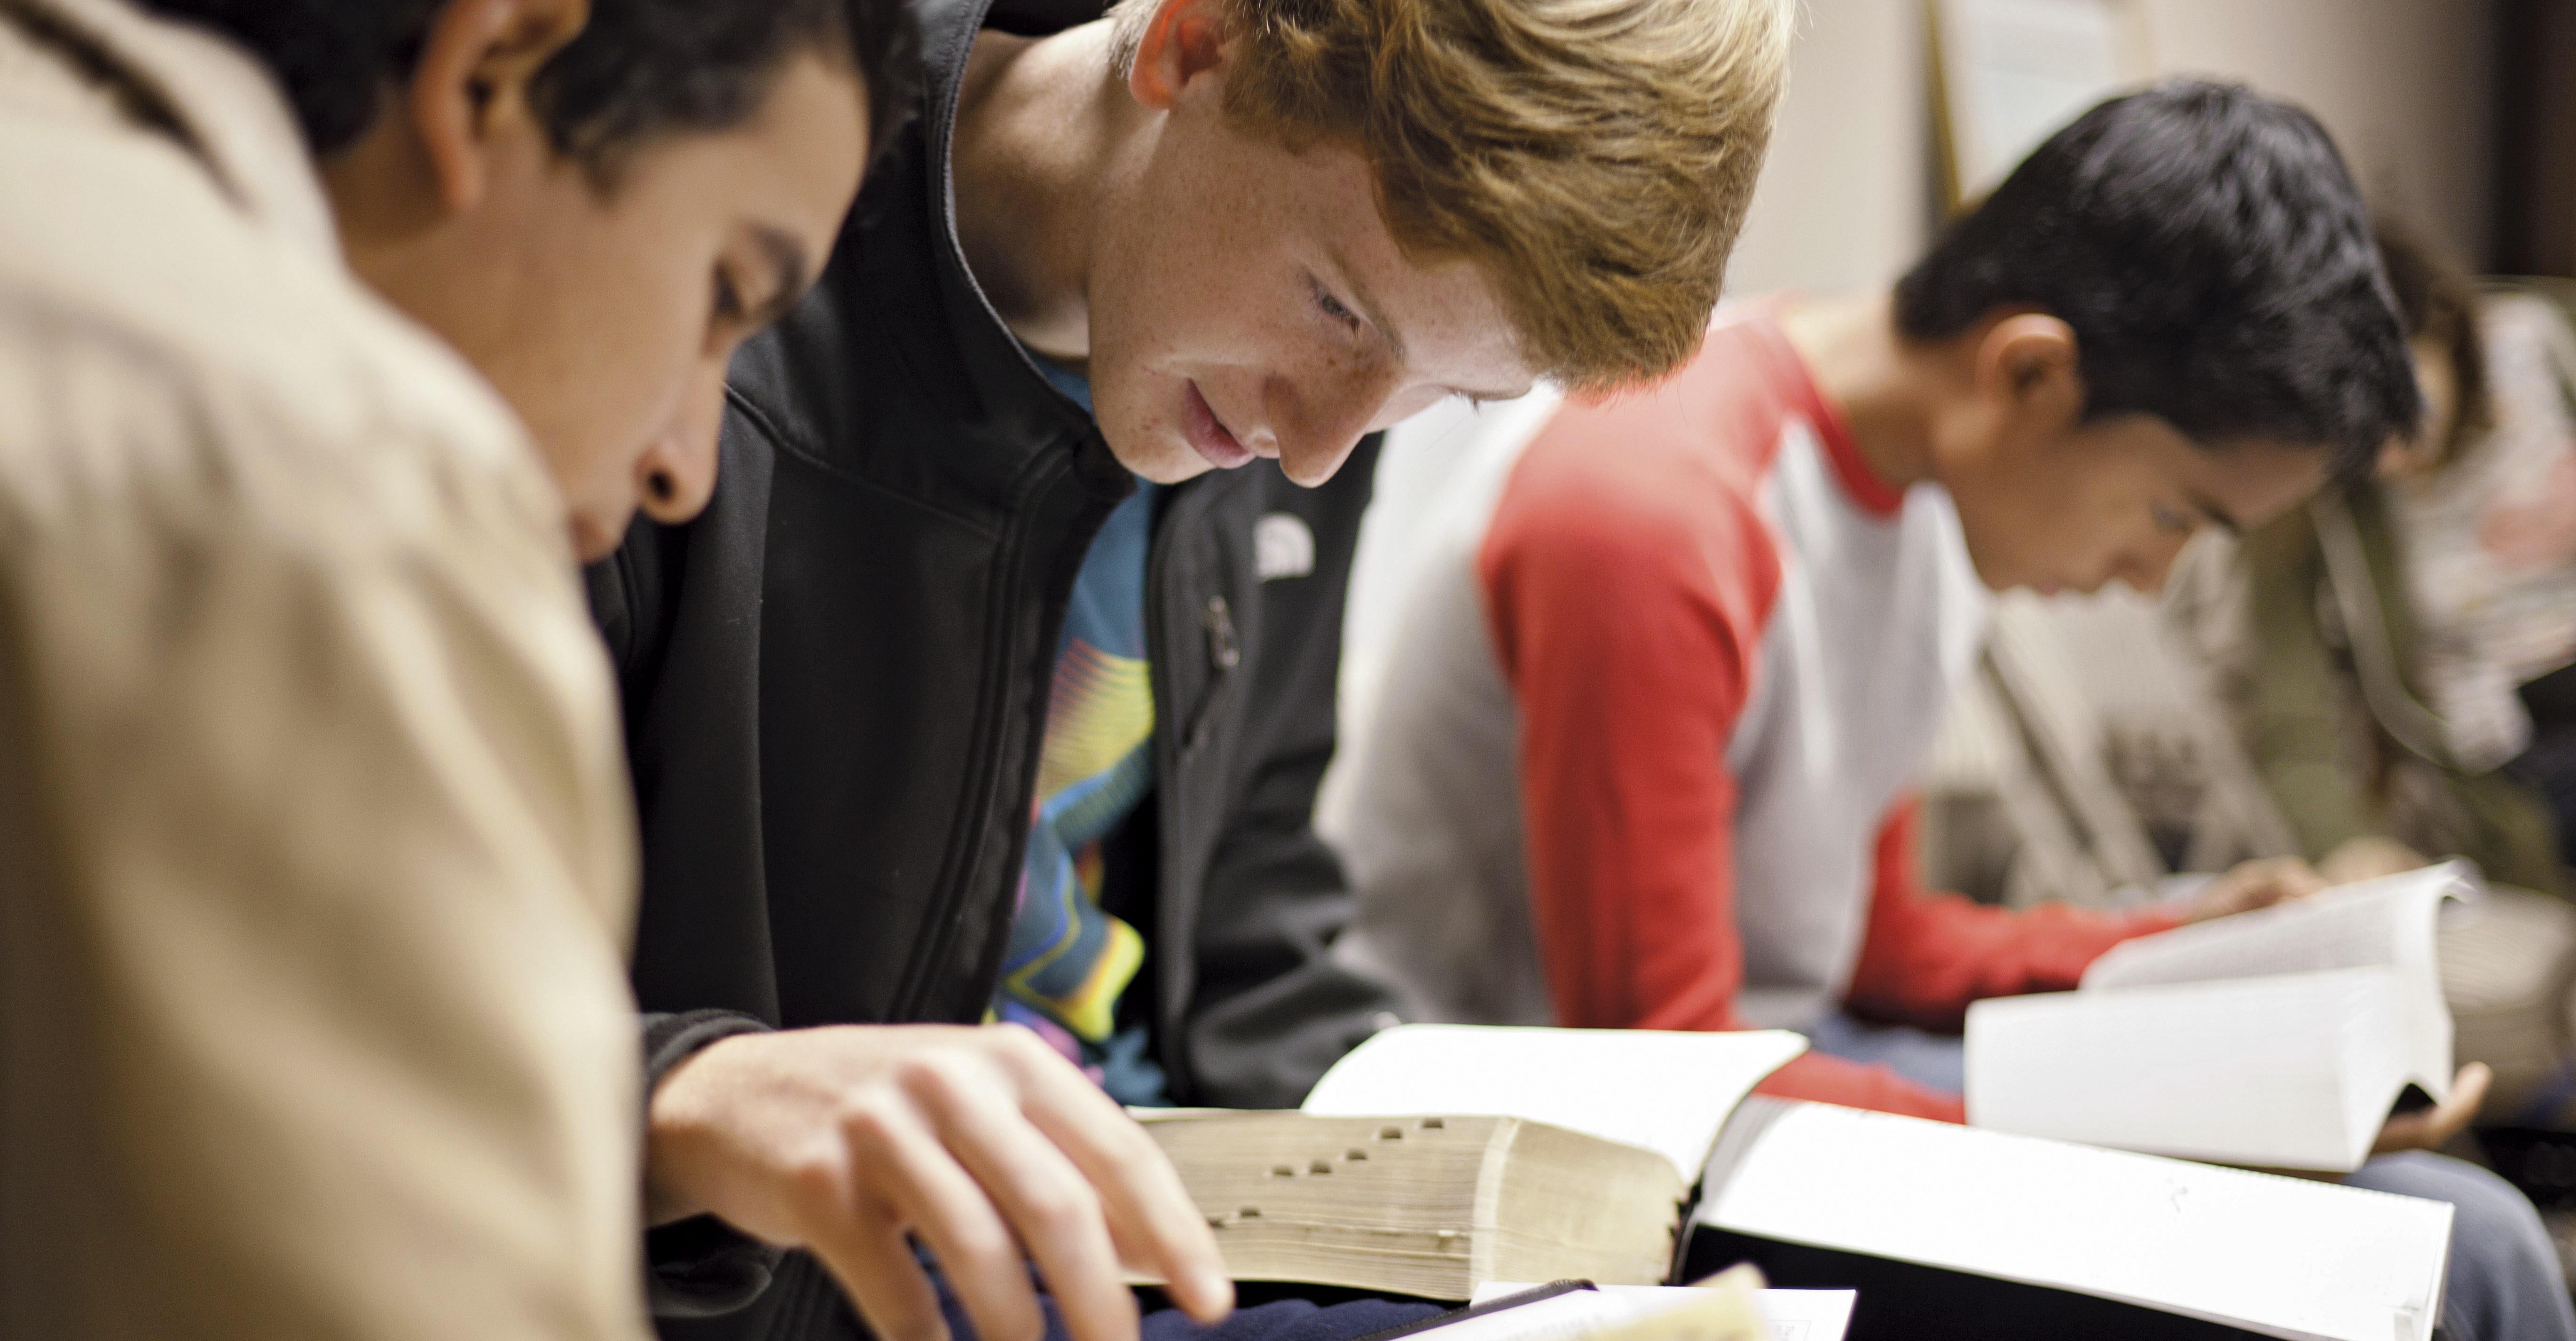 Youth studying the scriptures in their seminary class.